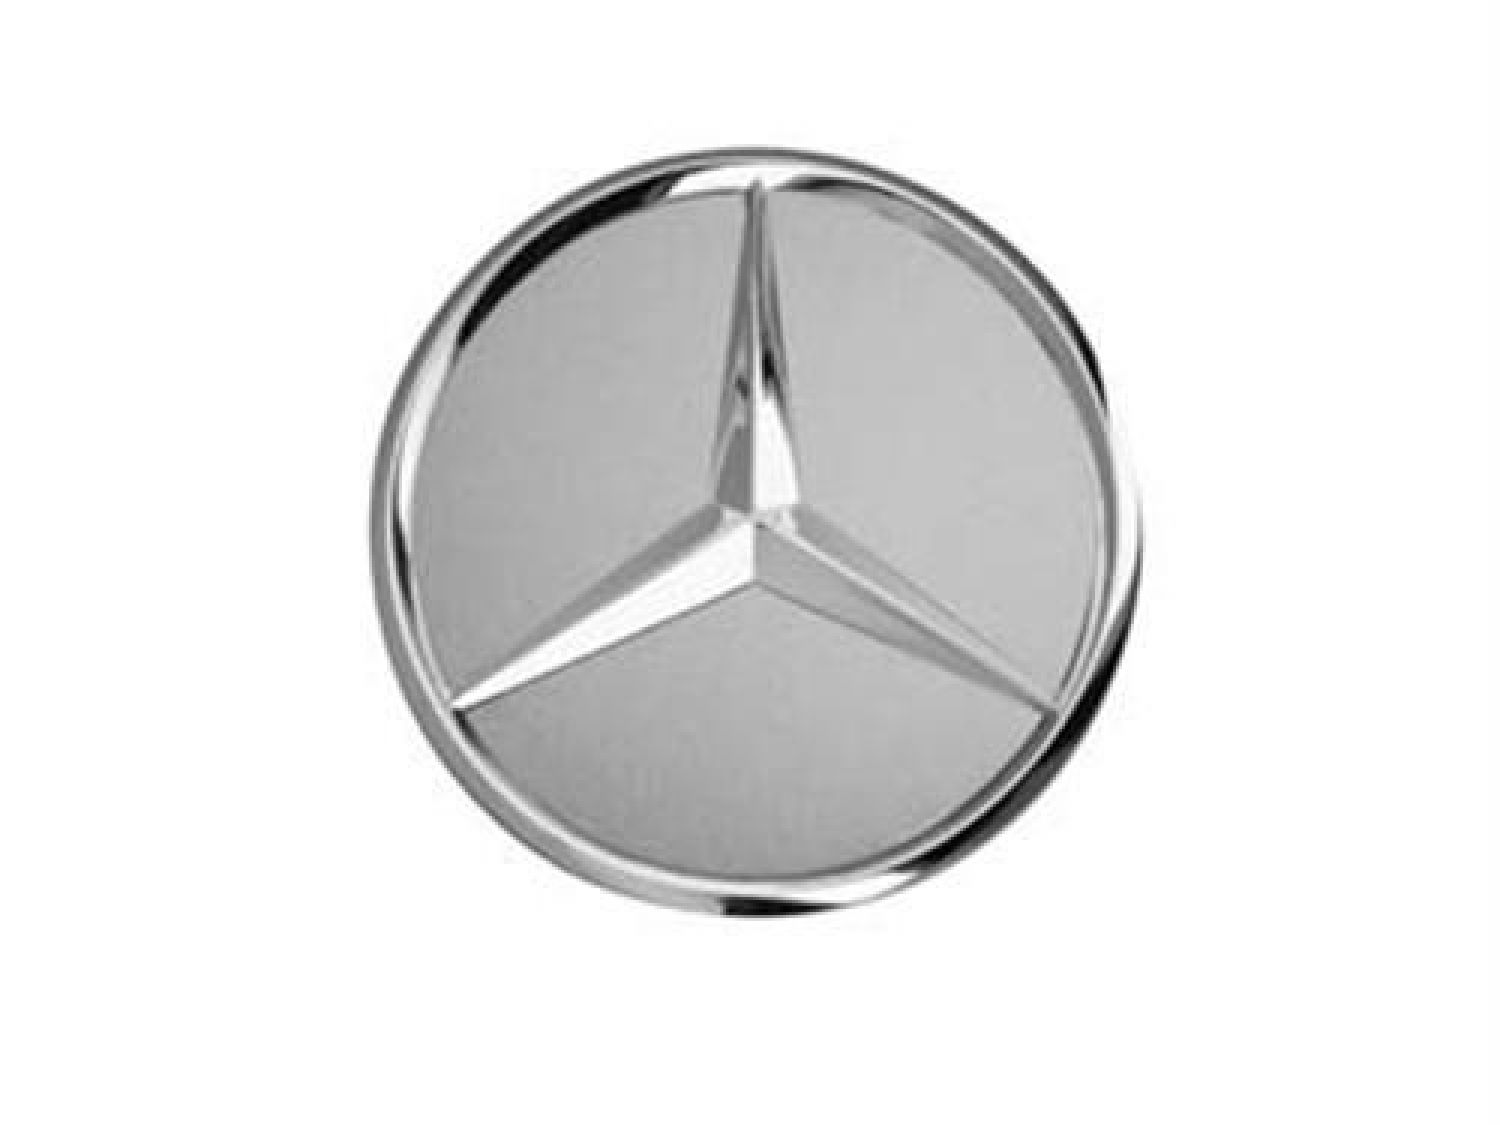 Mercedes benz hub caps hub cap w126 w140 w220 s class amg for Mercedes benz hubcaps